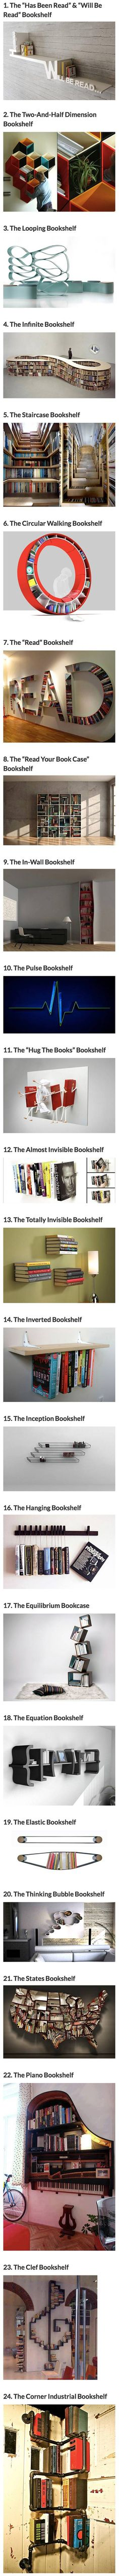 I will have so many book shelves in my house...